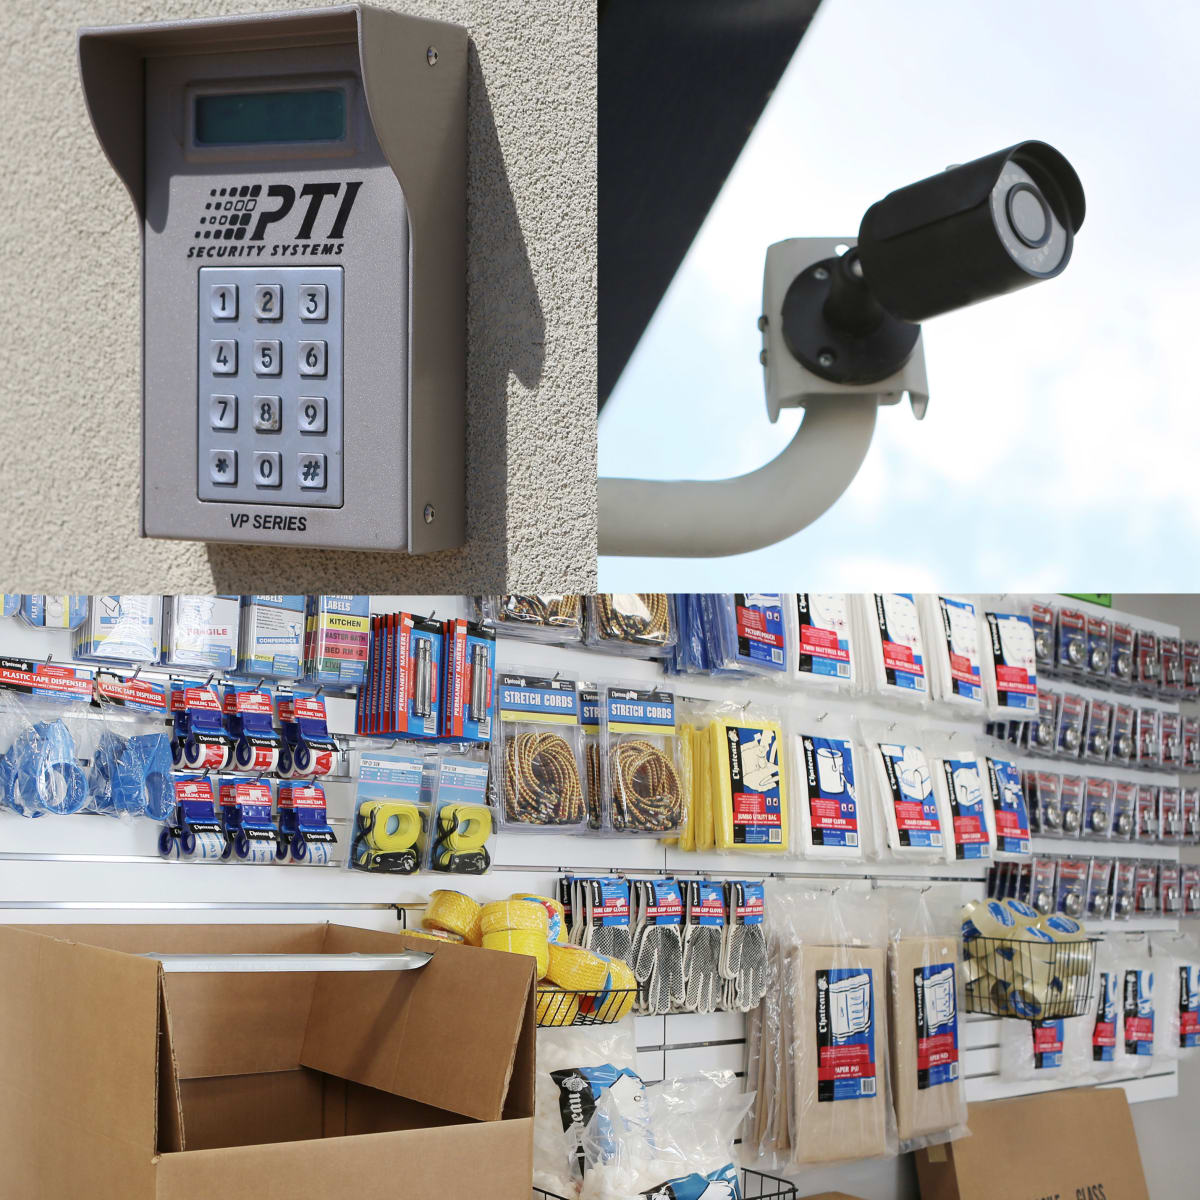 We provide 24 hour security monitoring and sell various moving and packing supplies at Midgard Self Storage in Savannah, Georgia